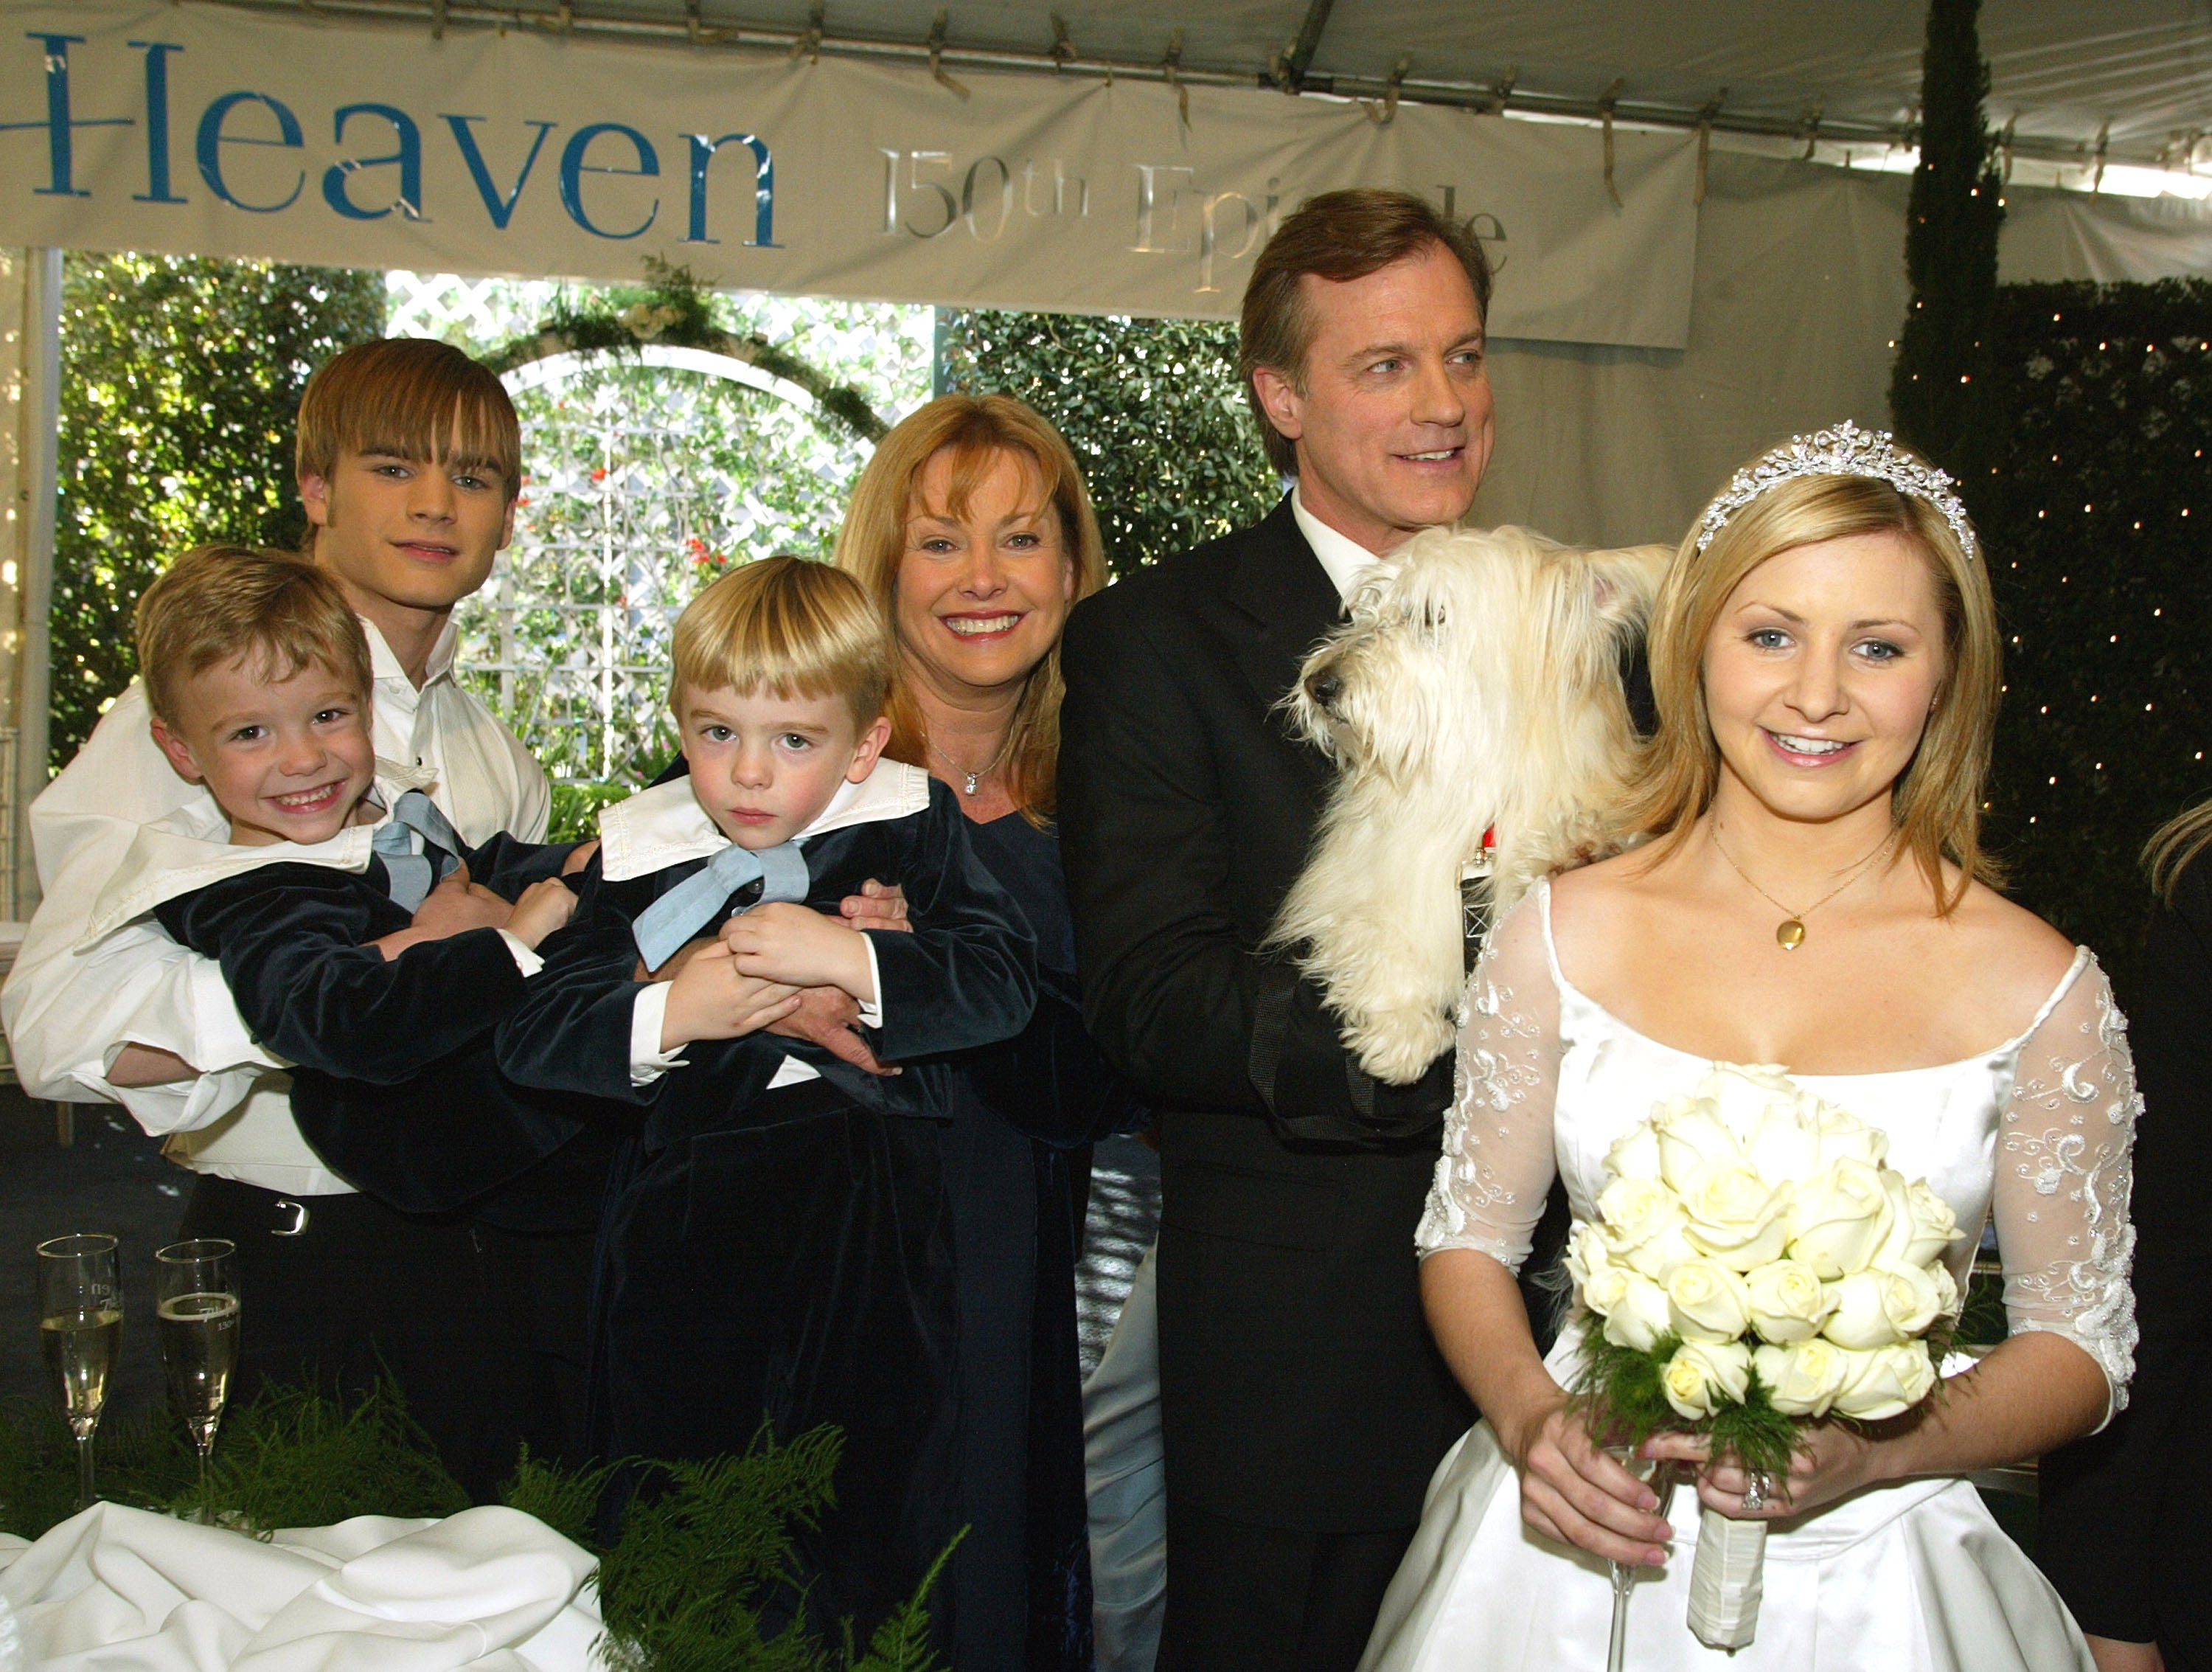 """David Gallagher, twins Lorenzo and Nikolas Brino, Catherine Hicks, Stephen Collins, and Beverley Mitchell pose at a reception to celebrate 150 episodes of """"7th Heaven"""" on February 20, 2003 in Los Angeles, California 